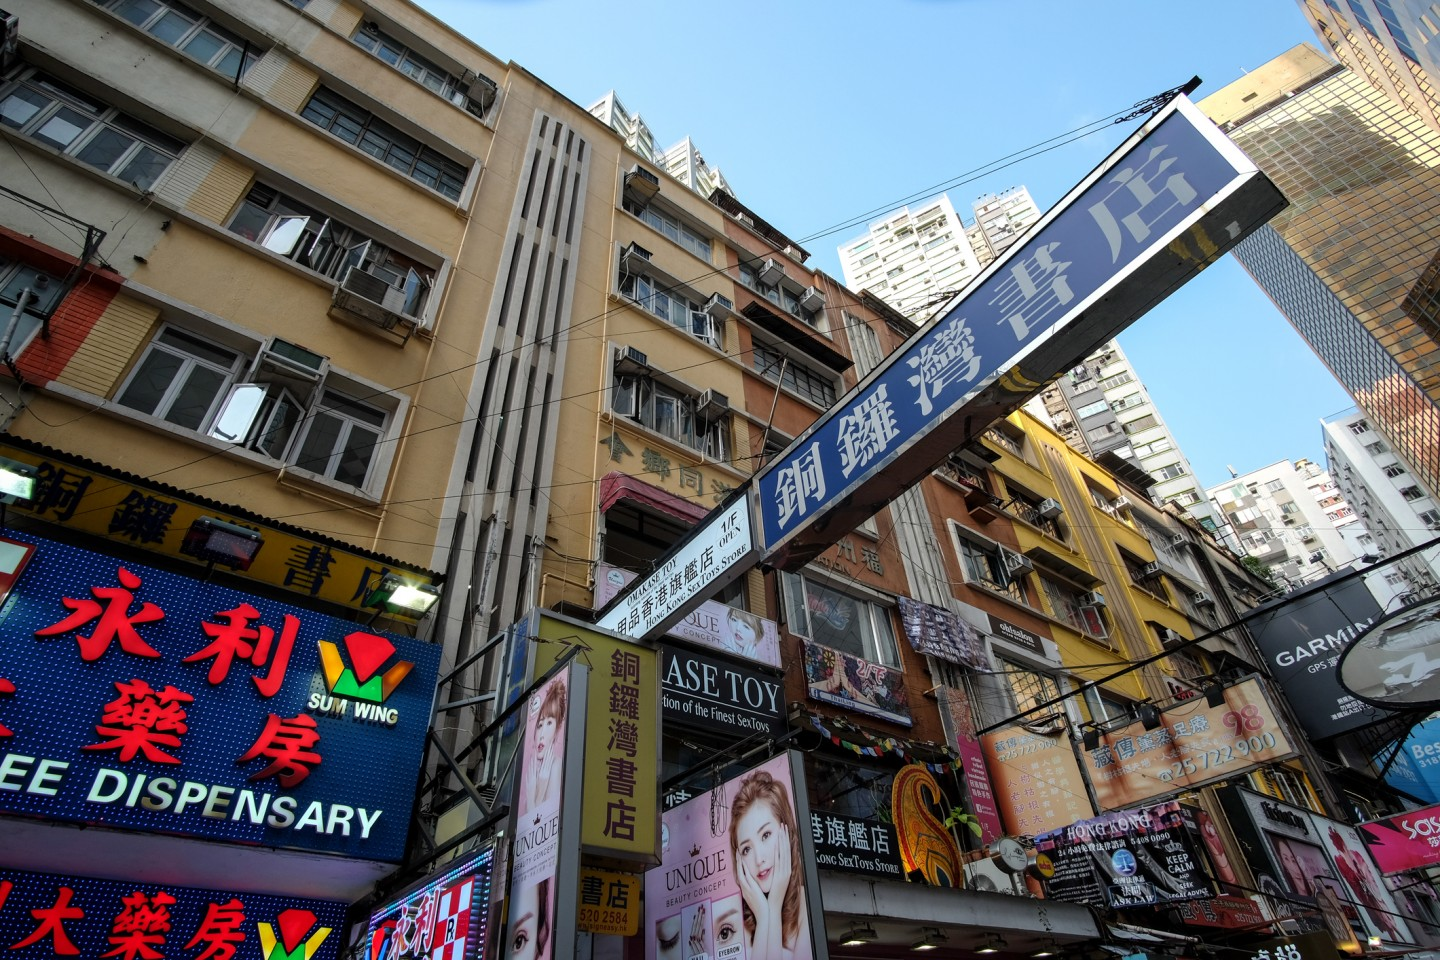 Sign of the Causeway Bay Books: State media in China believes that Gui Minhai's books spread rumours that are harmful to society. (iStock)